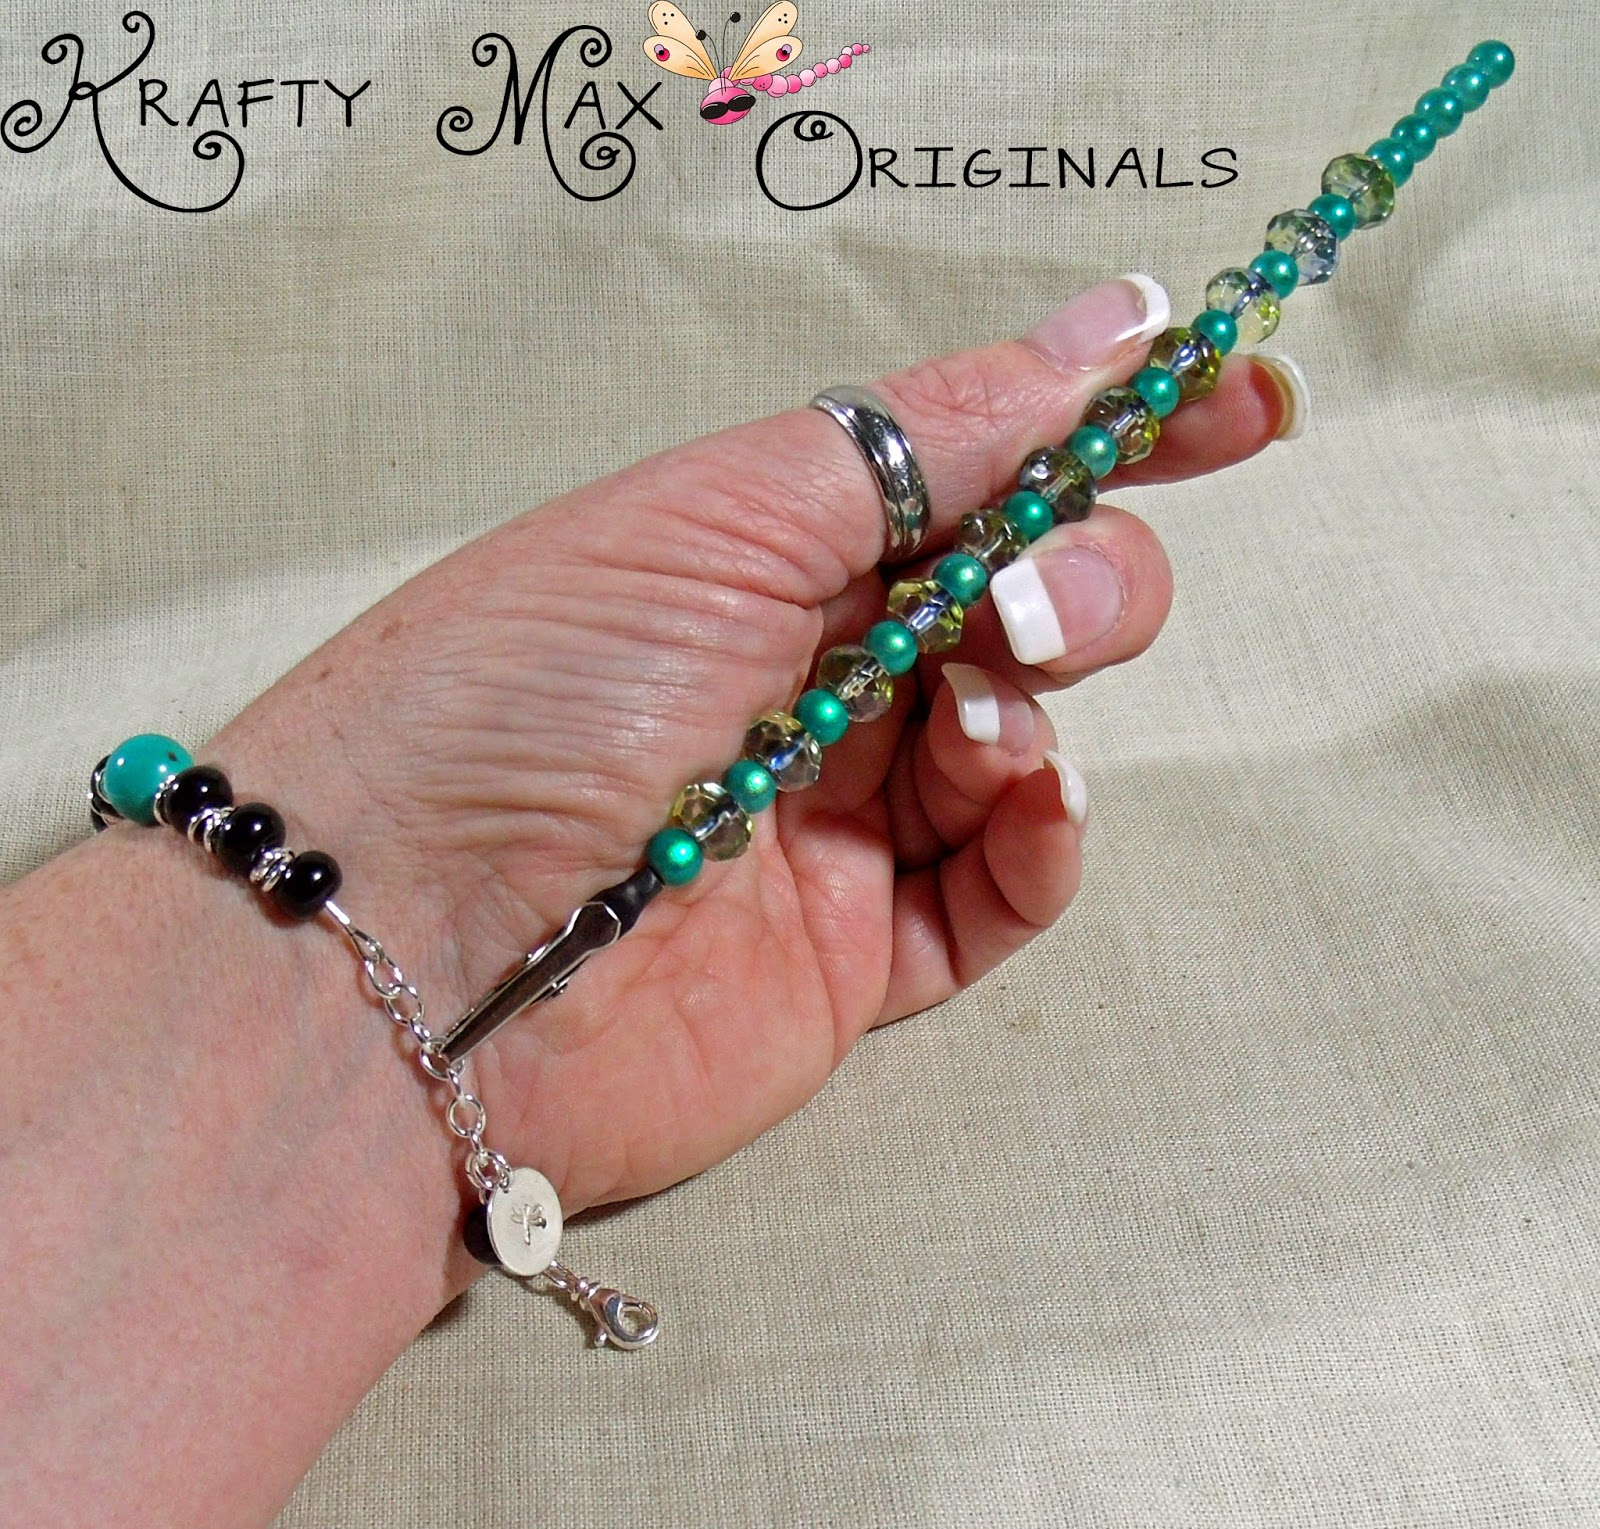 http://www.artfire.com/ext/shop/product_view/KraftyMax/10017611/green_miracle_beads_-_no_husband_needed_klasp_helper/handmade/accessories